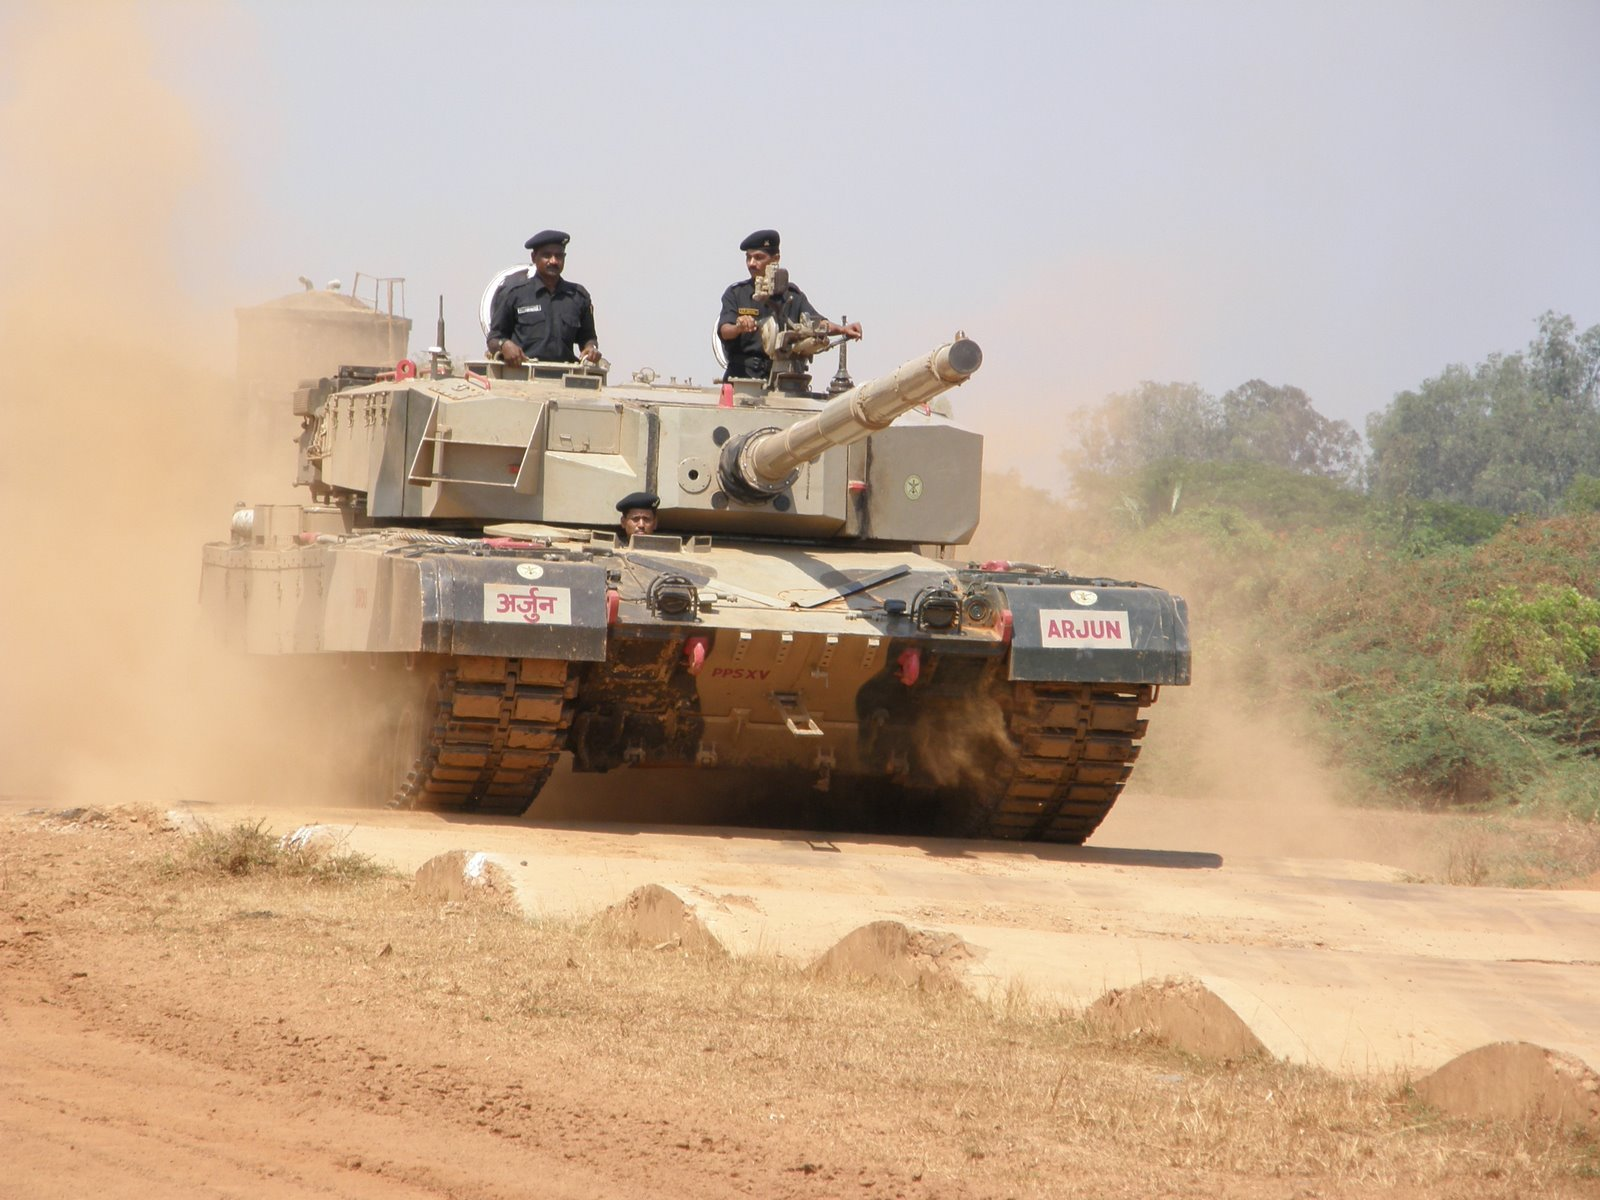 Arjun Series : Inception of the Arjun Program and Indian Army's need for a reliable indigenously designed Main Battle Tank.